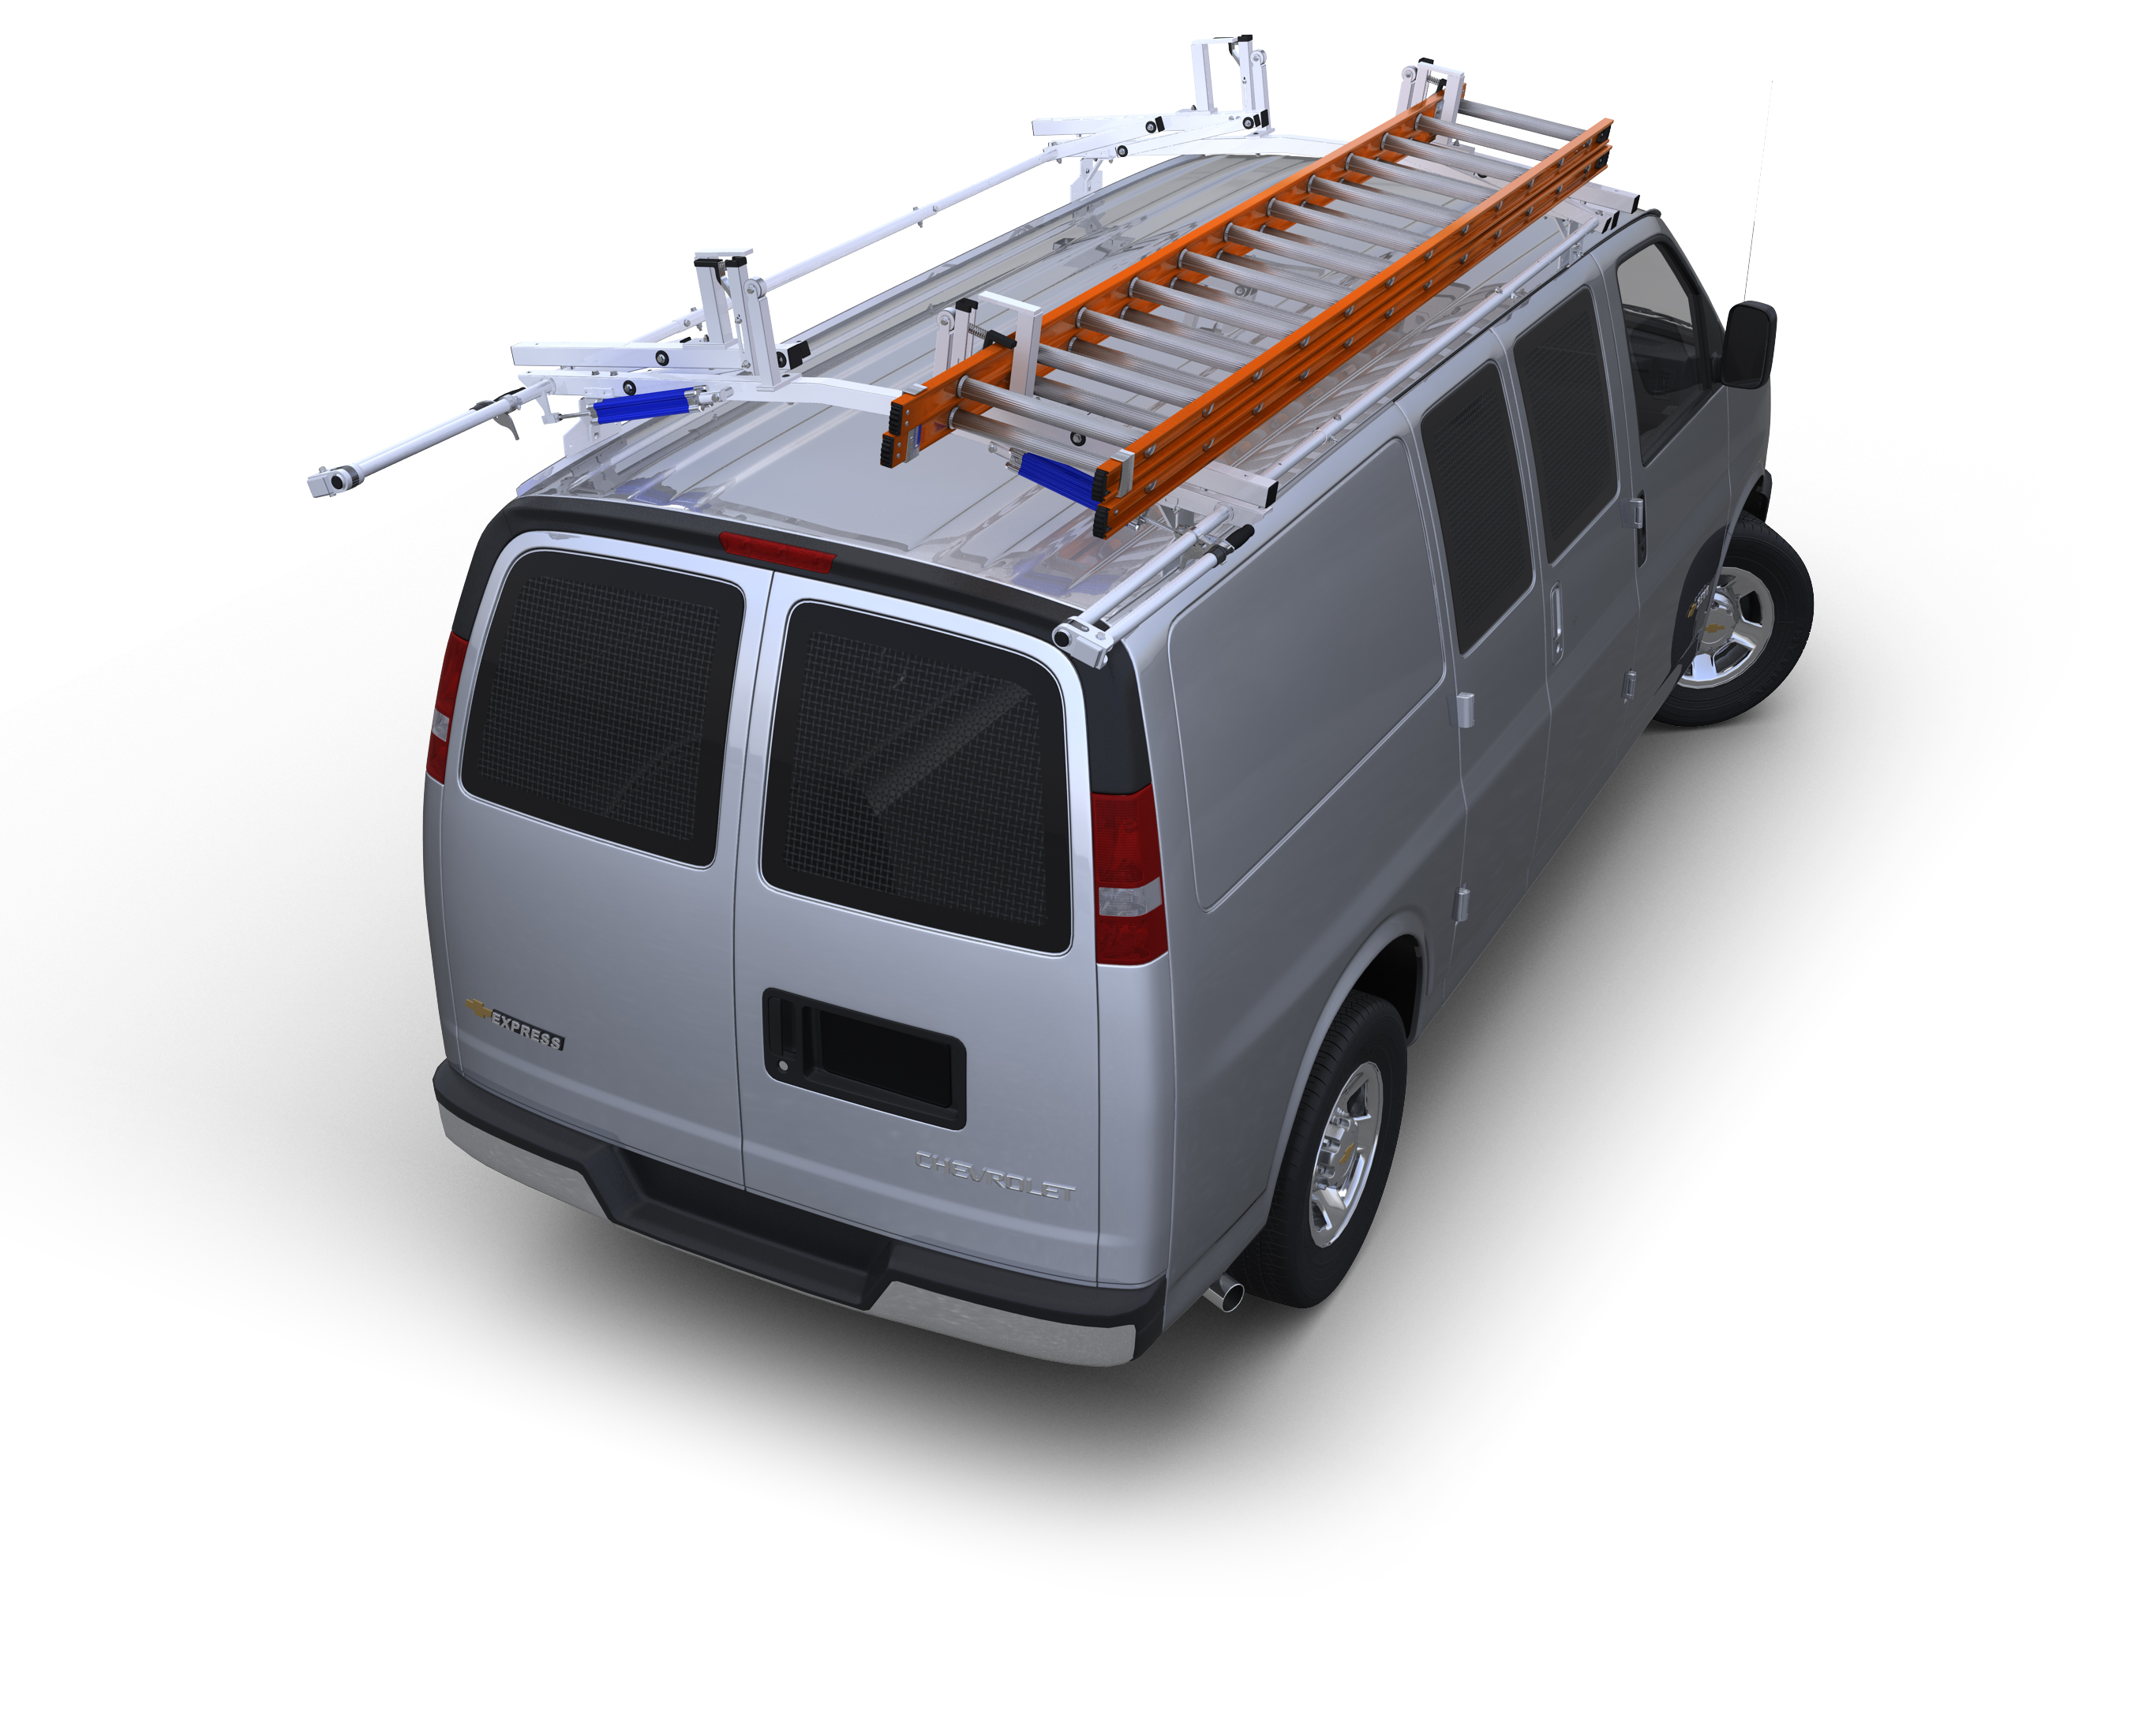 Topper Hot Dip Galvanized 8' Cargo Carrier Rack for the RAM ProMaster City